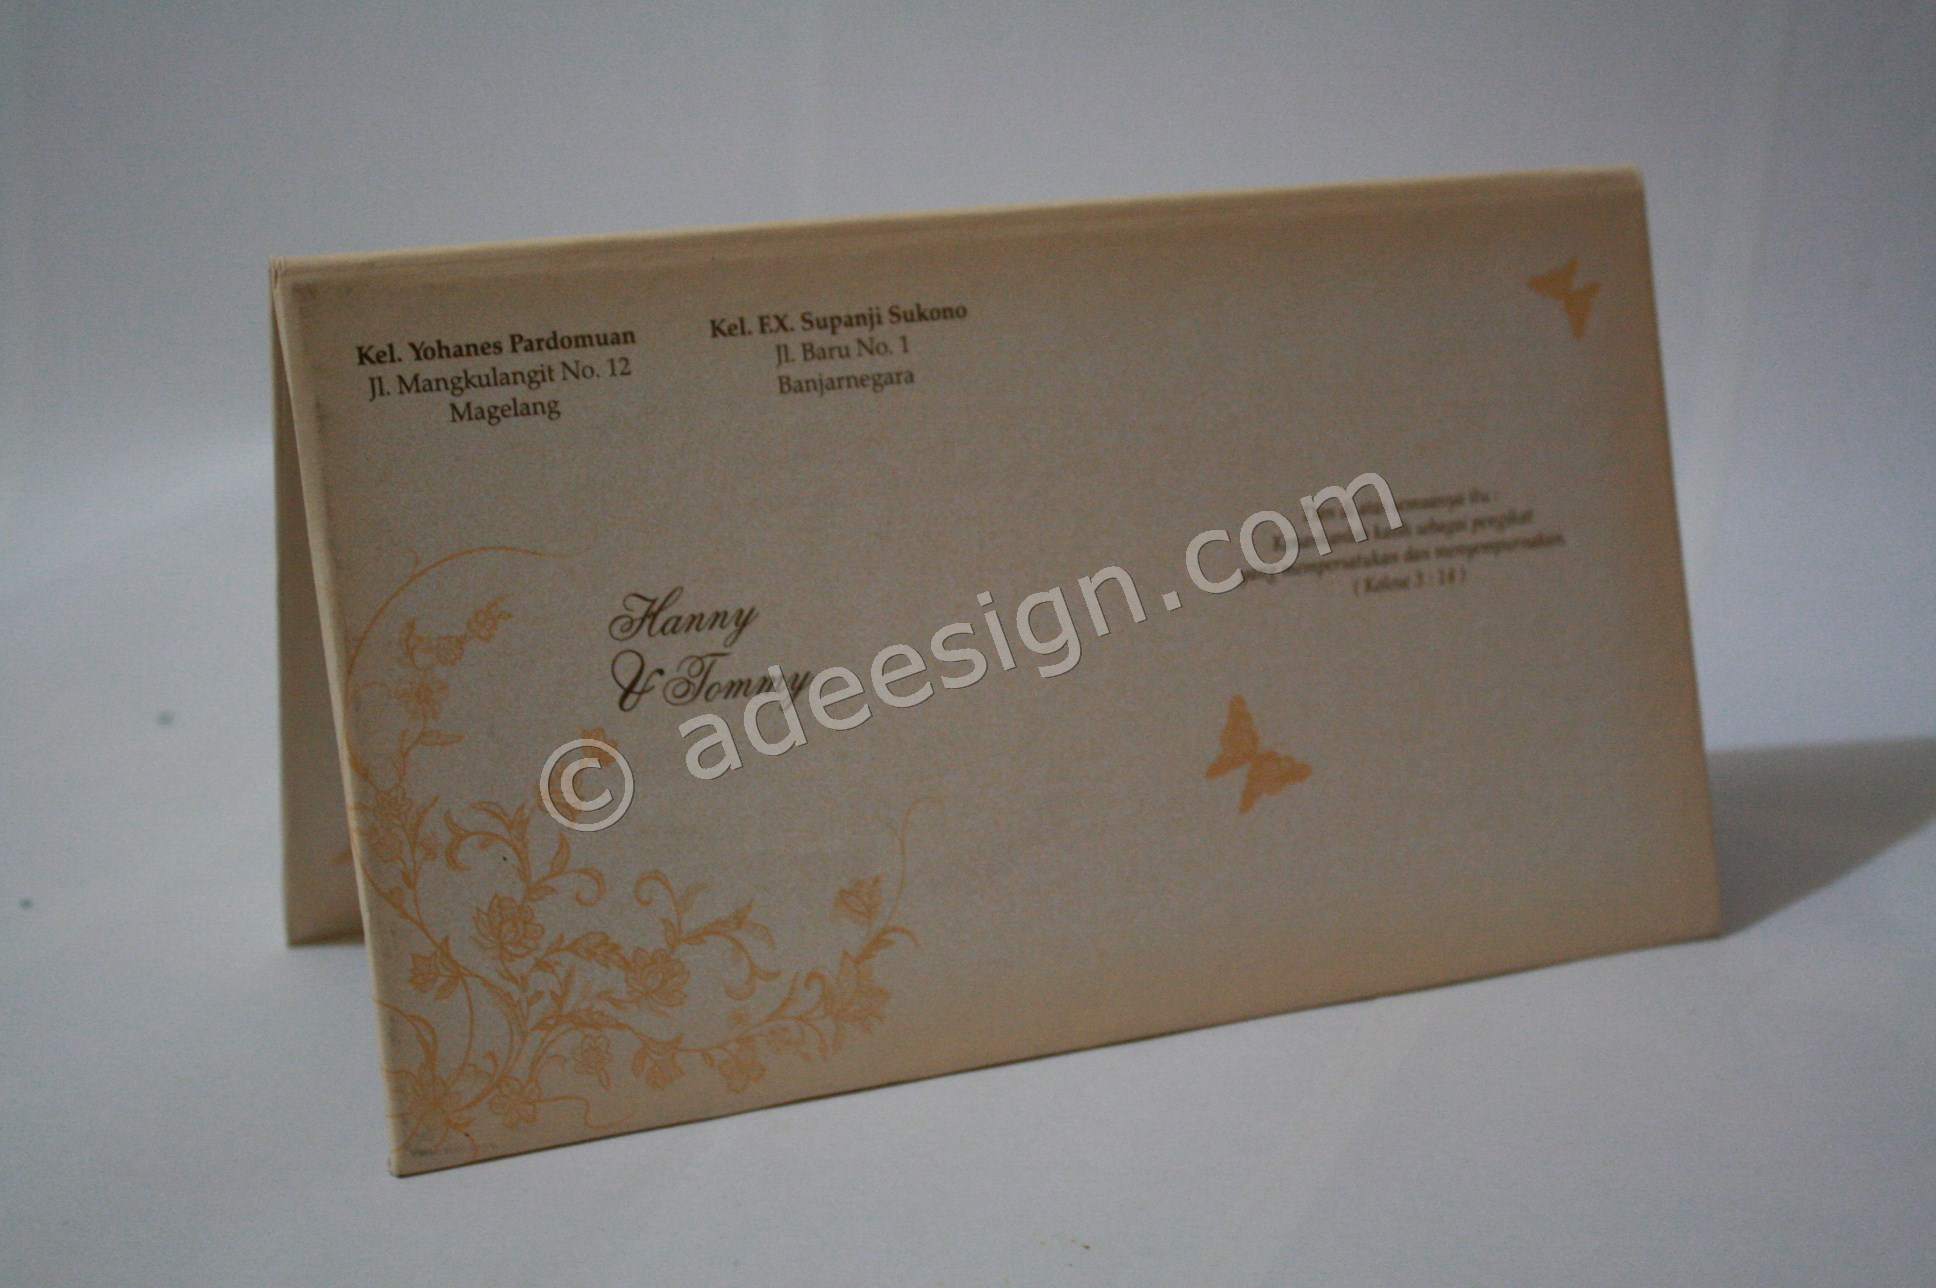 Kartu Undangan Pernikahan Hard Cover Hanny dan Tommy 4 - Membuat Wedding Invitations Unik dan Simple di Sawahan